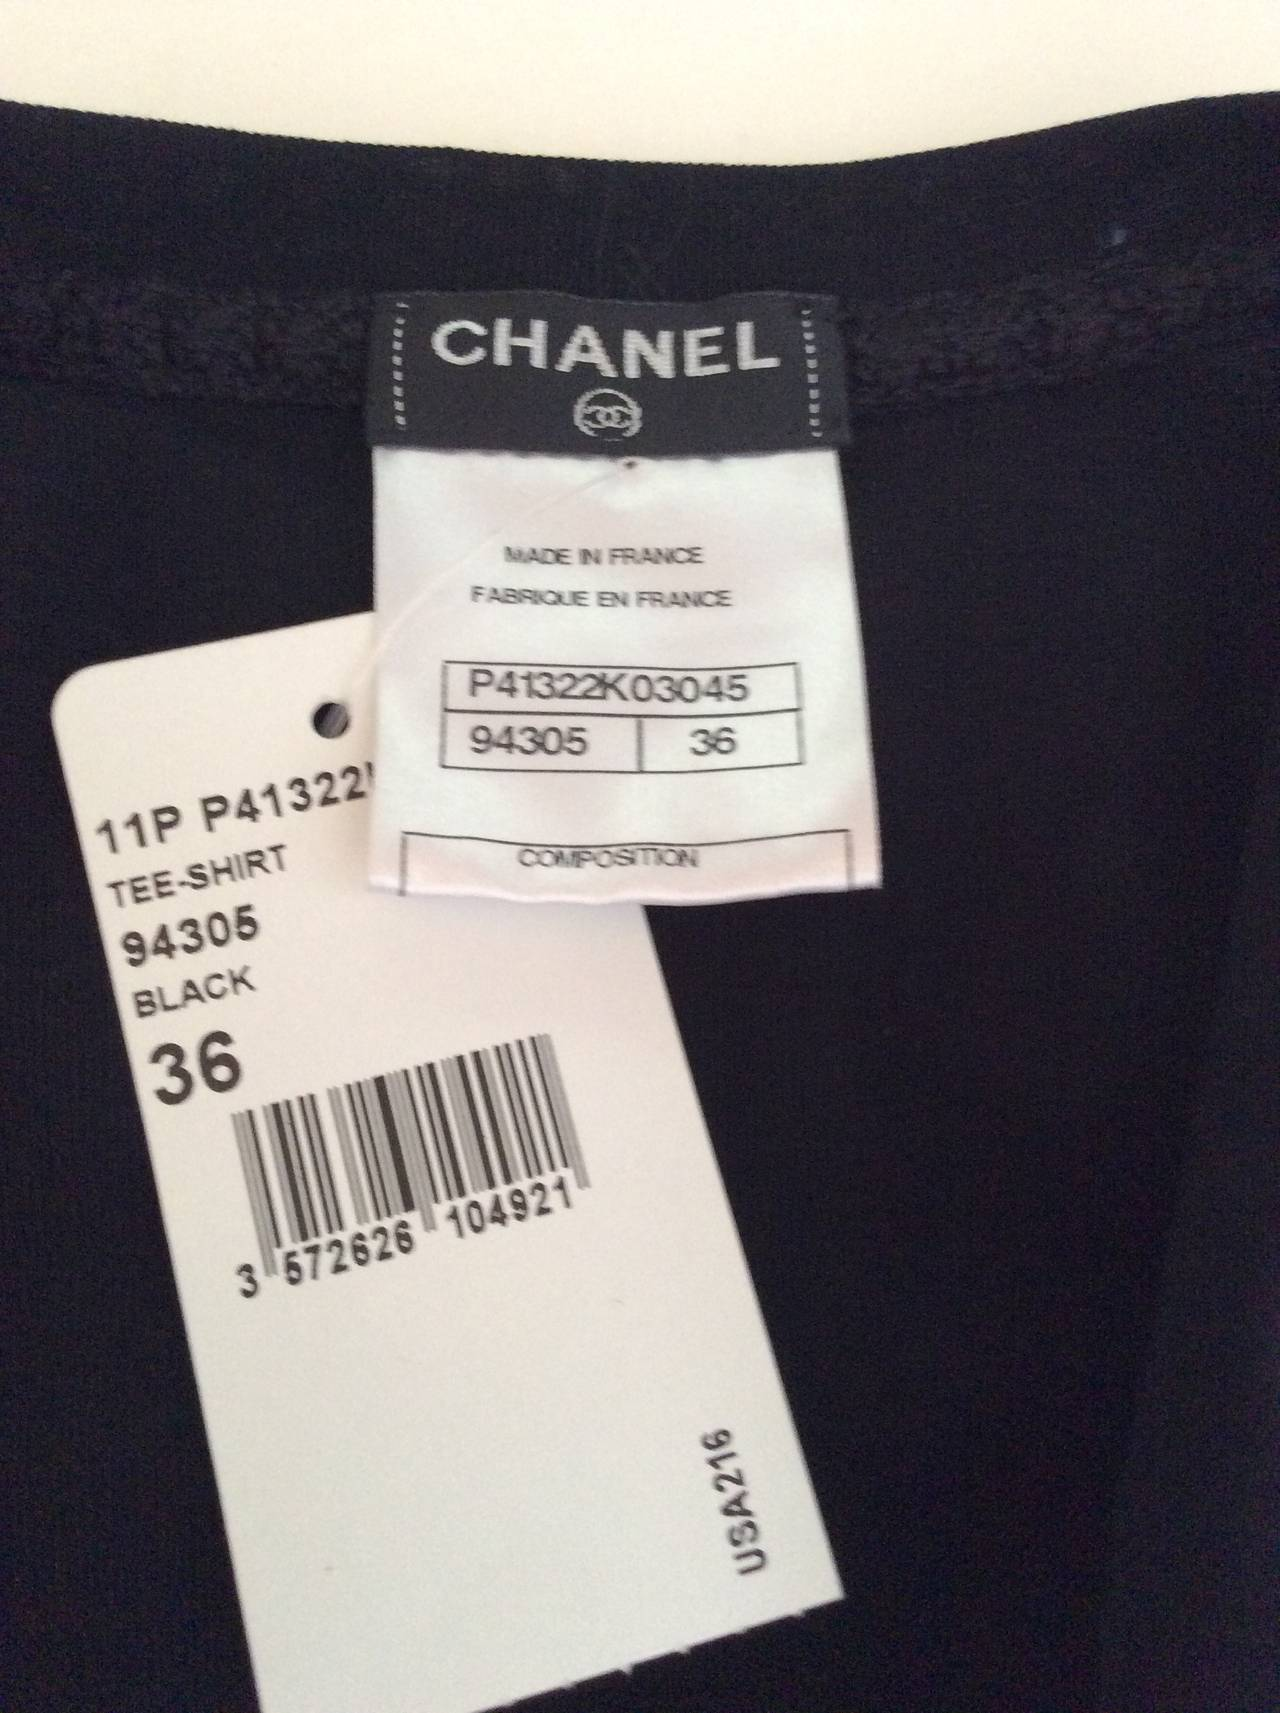 Chanel Black Tee Shirt - Size 36 6